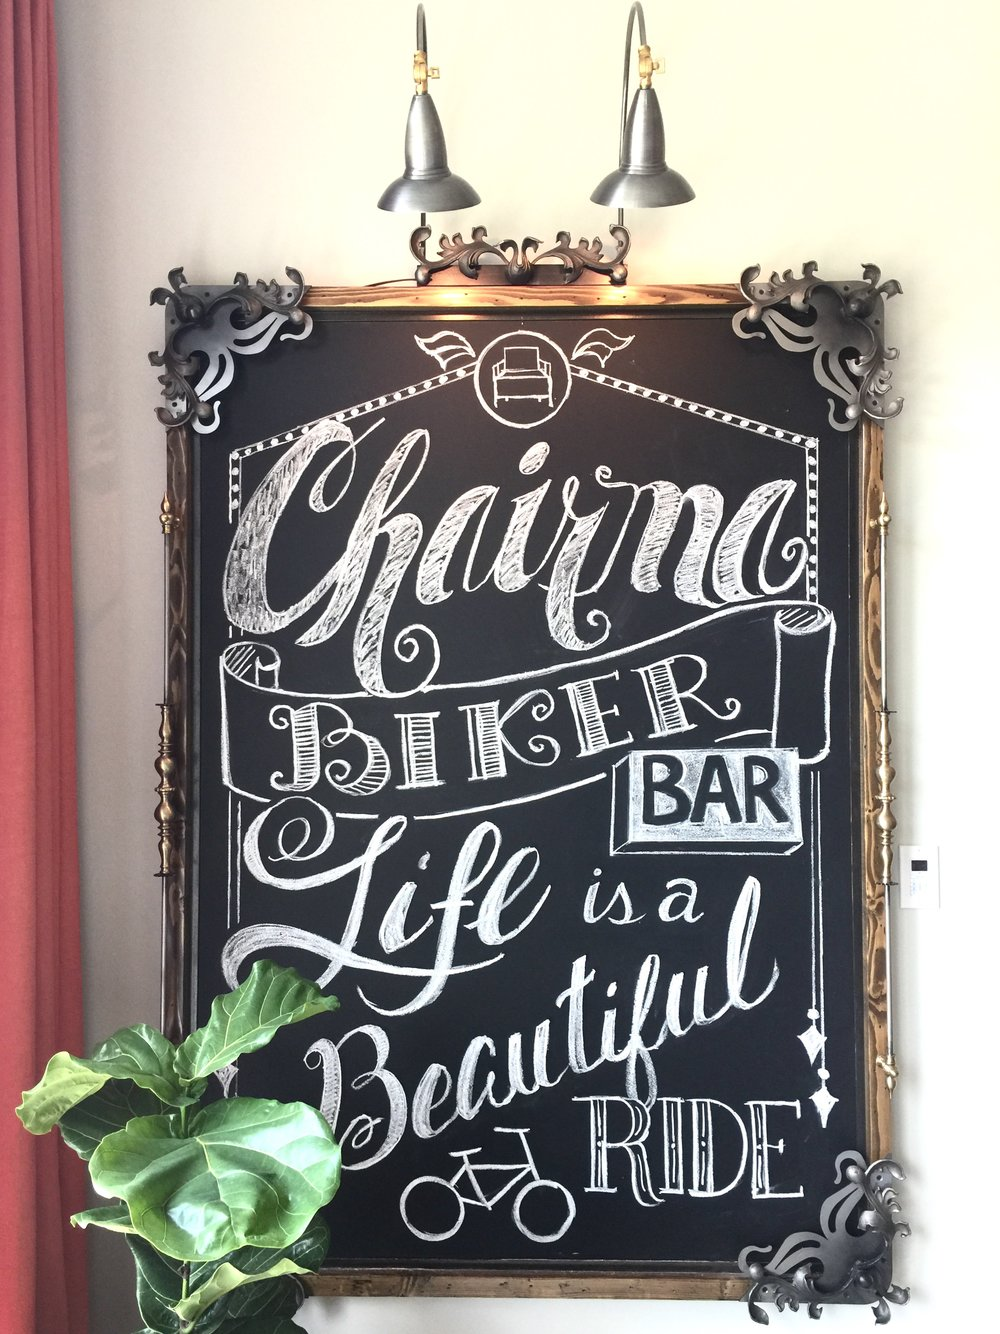 Custom Chalkboard - Designed by Chairma Design Group, Chalk Artist - Sarita Ackerman